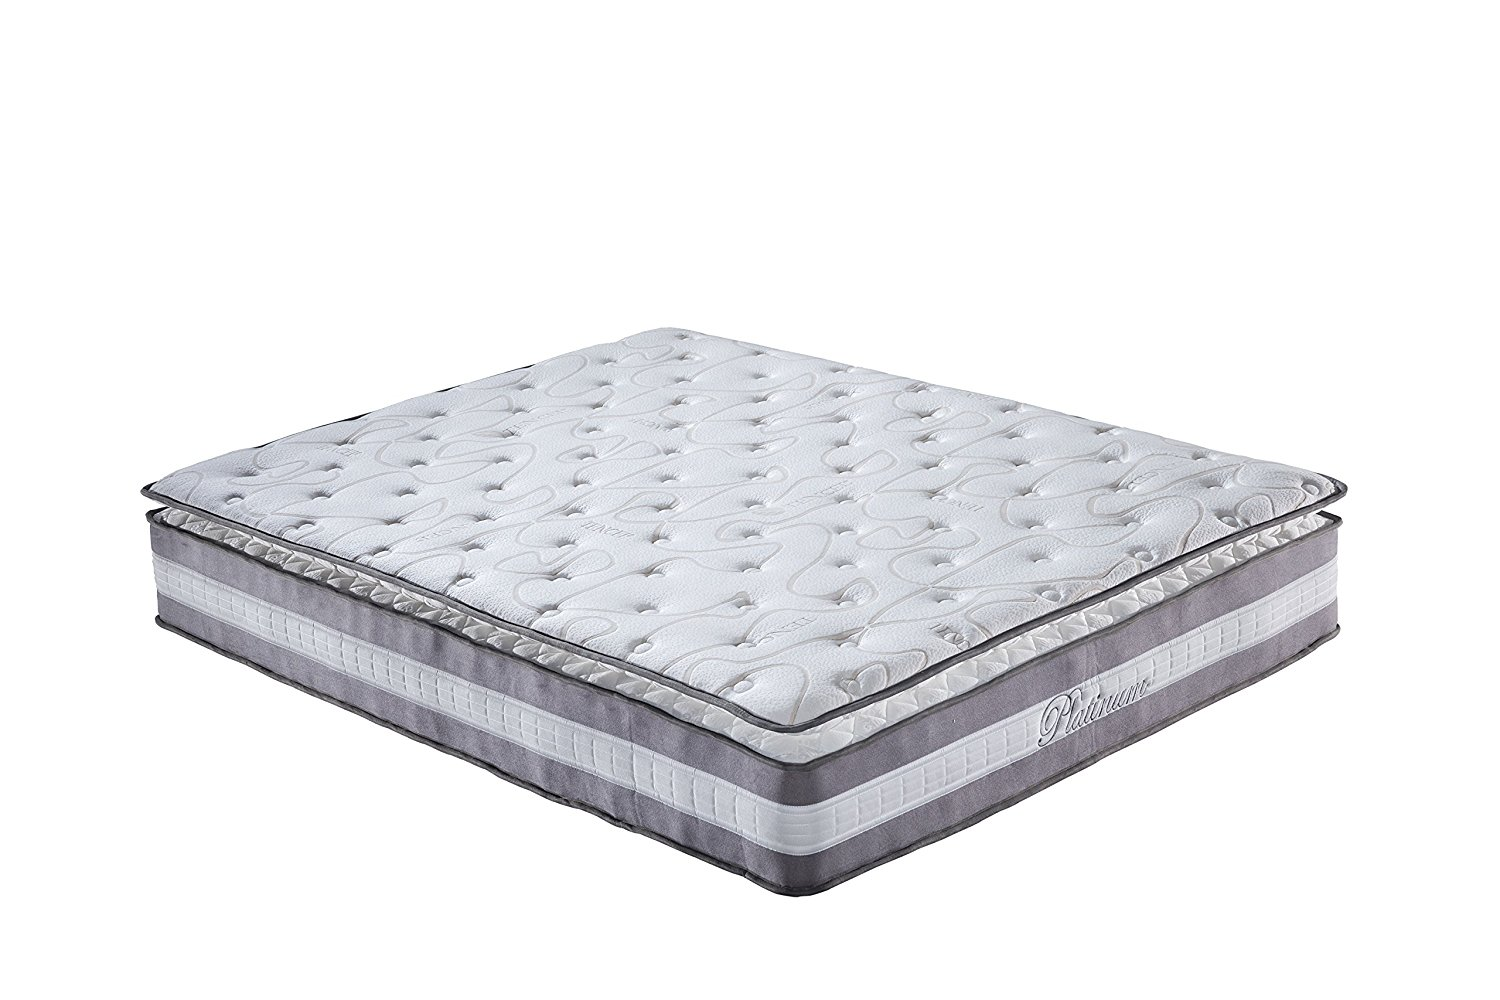 High Density 13-inch Hybrid Memory Foam and Innerspring Mattress with Plush Pillow Top (Full)